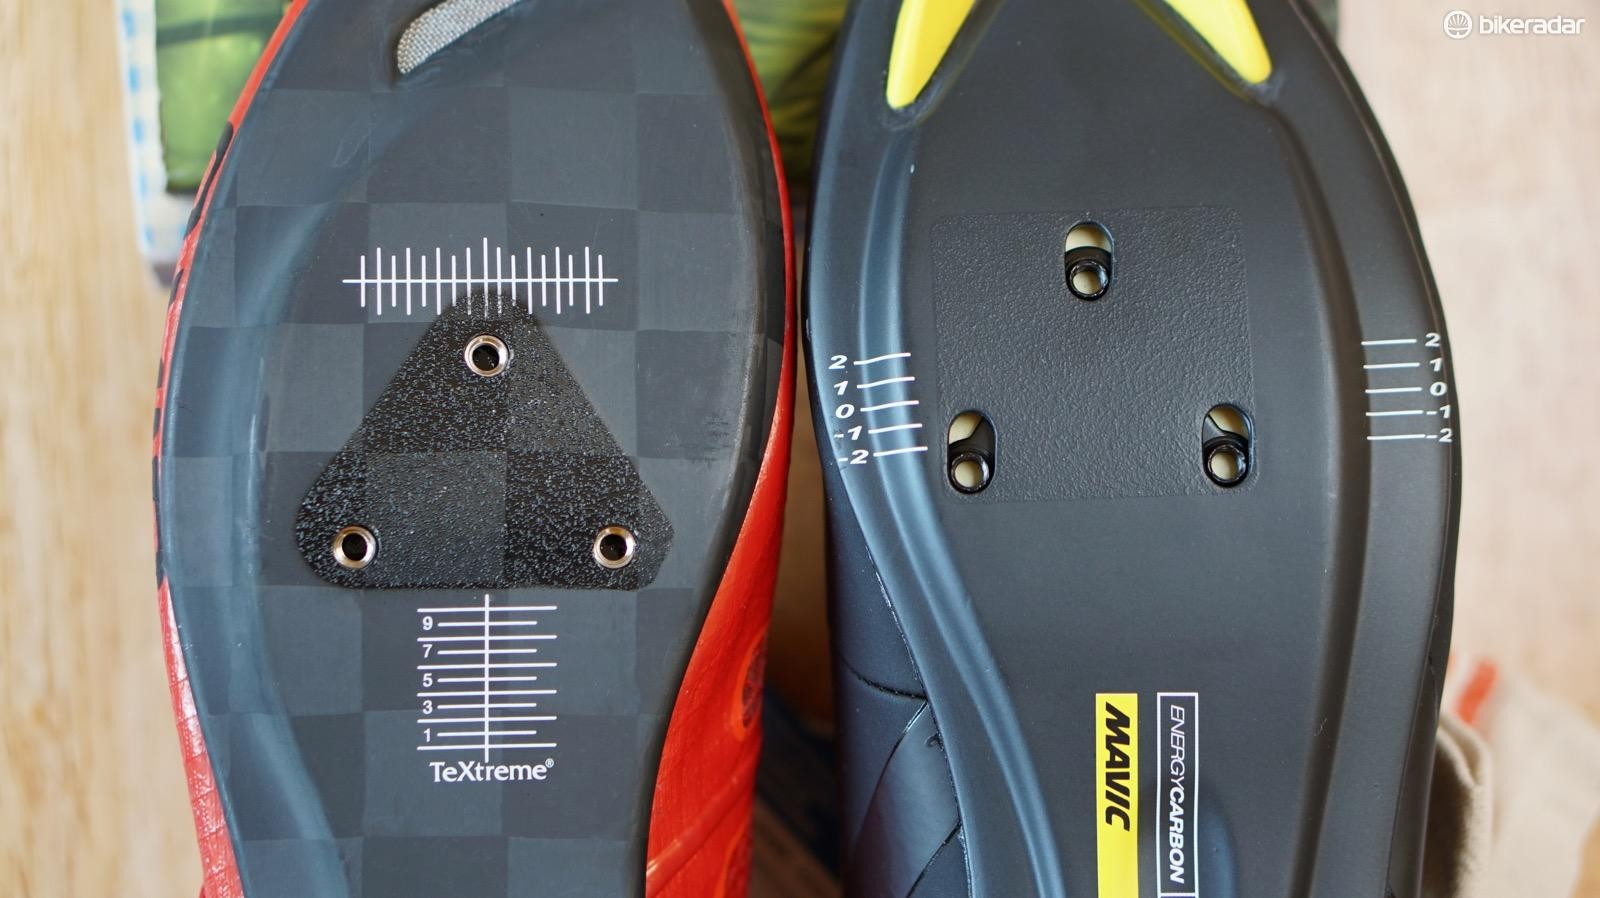 Giro's cleat mounts are 1cm closer to the heel than most shoes. On the Prolights, Giro foregoes any fore/aft adjustment to keep weight down